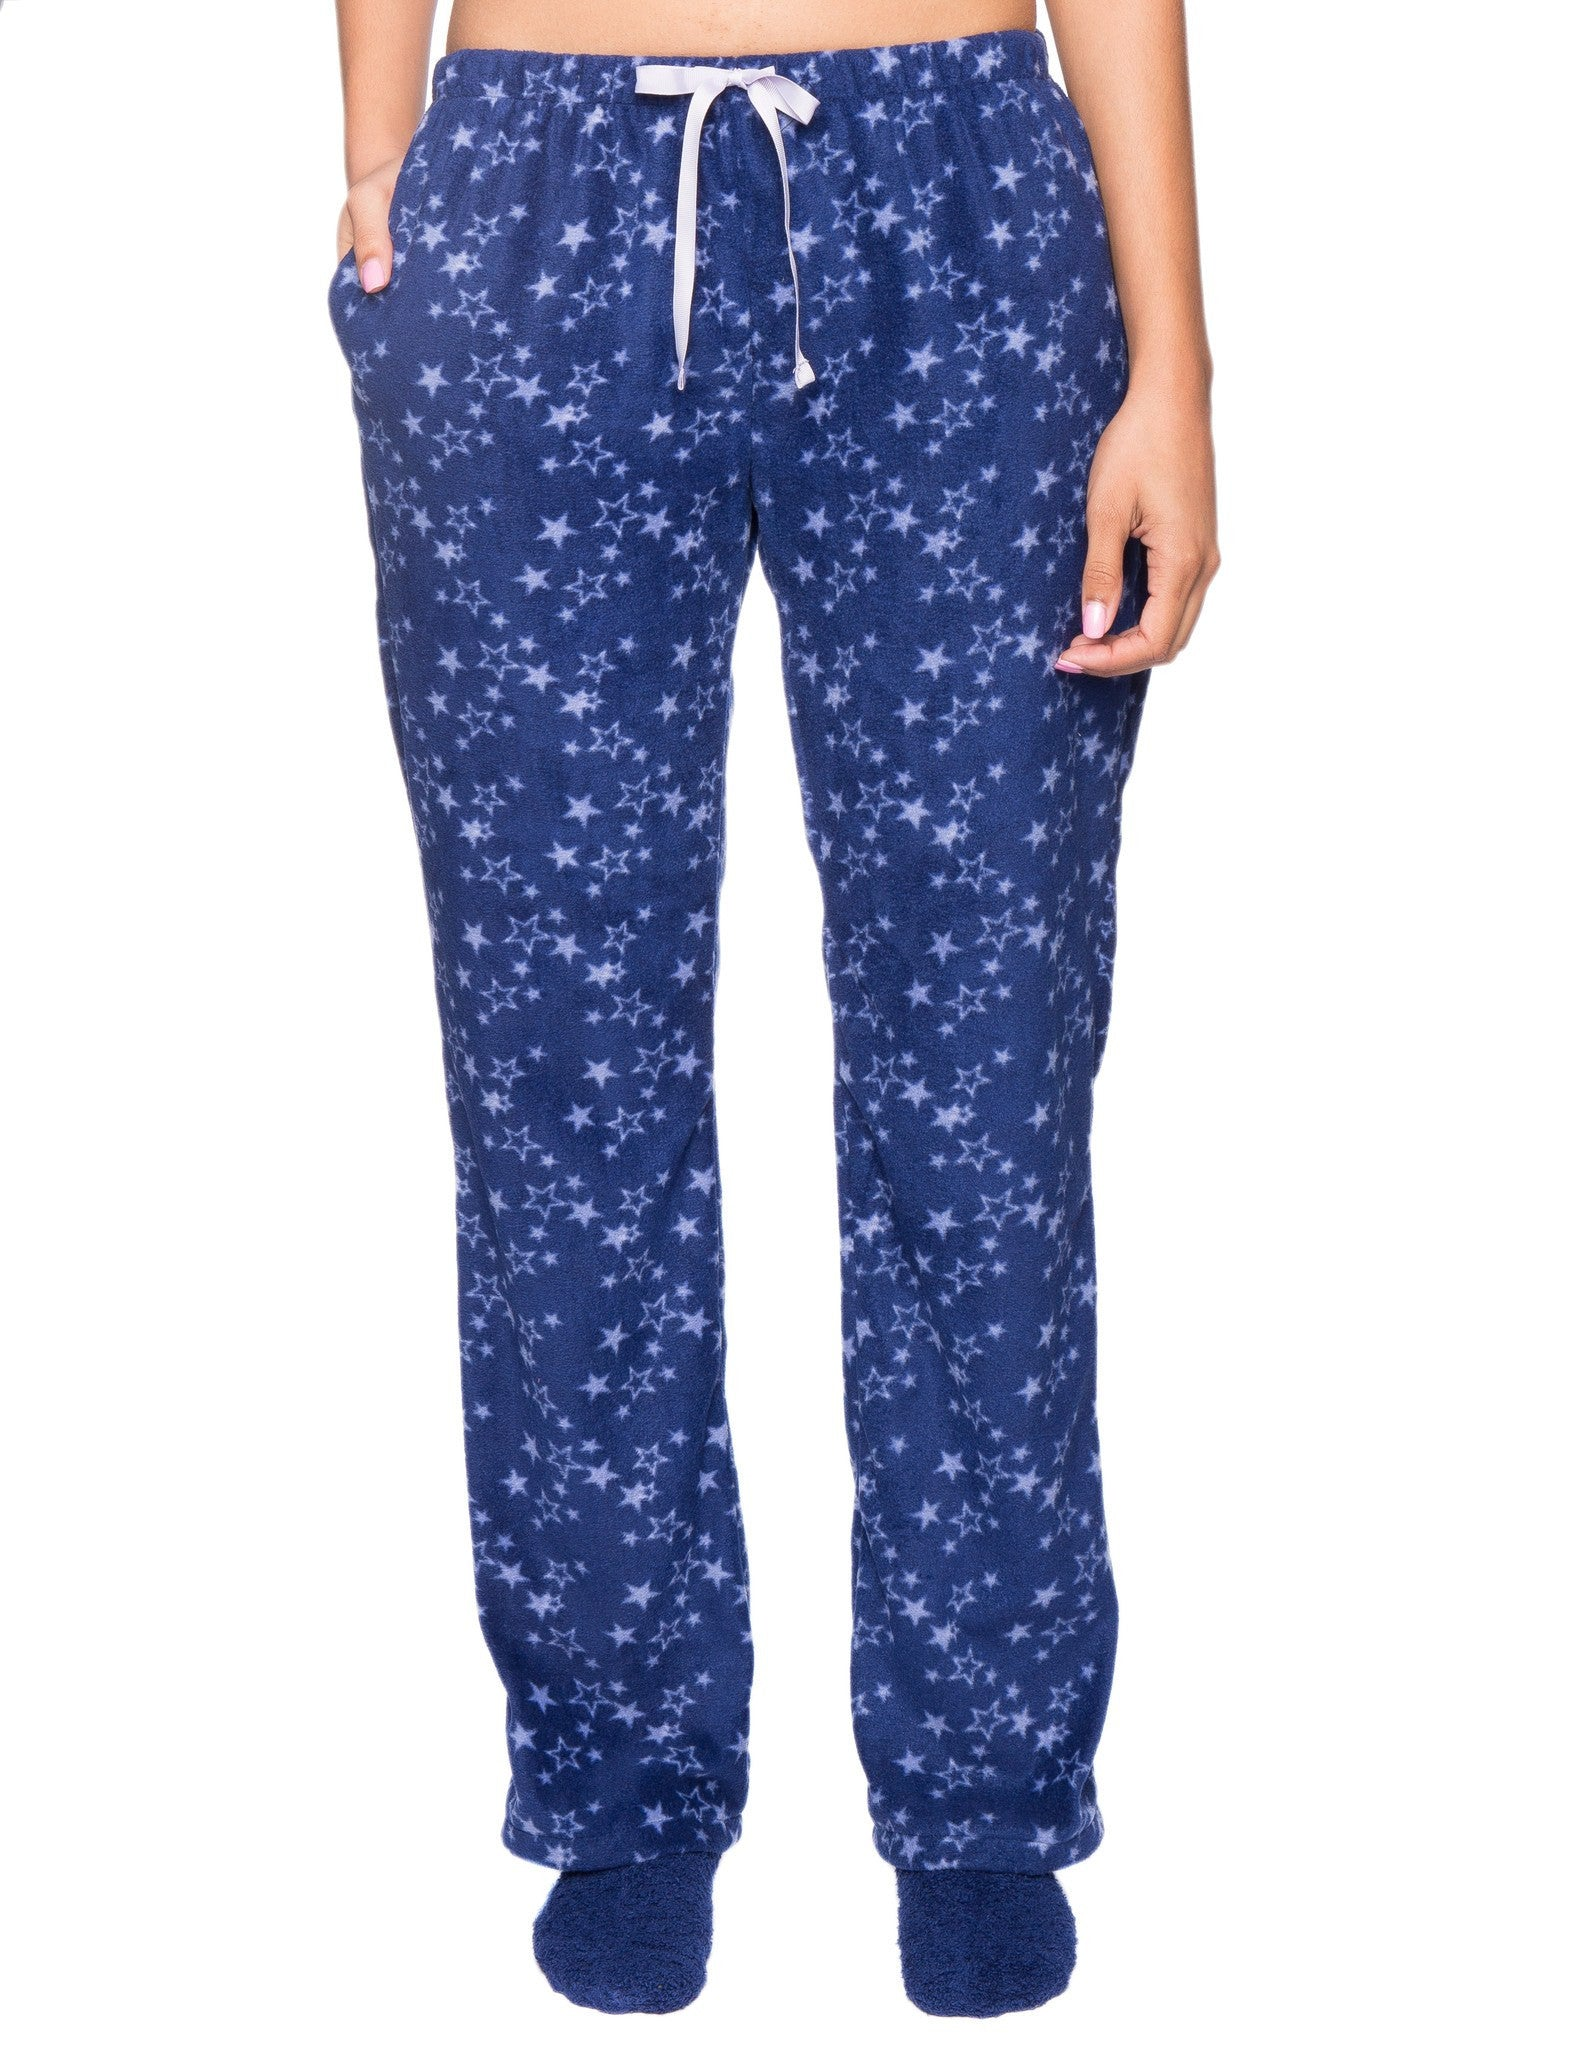 Womens Microfleece Lounge/Sleep Pants